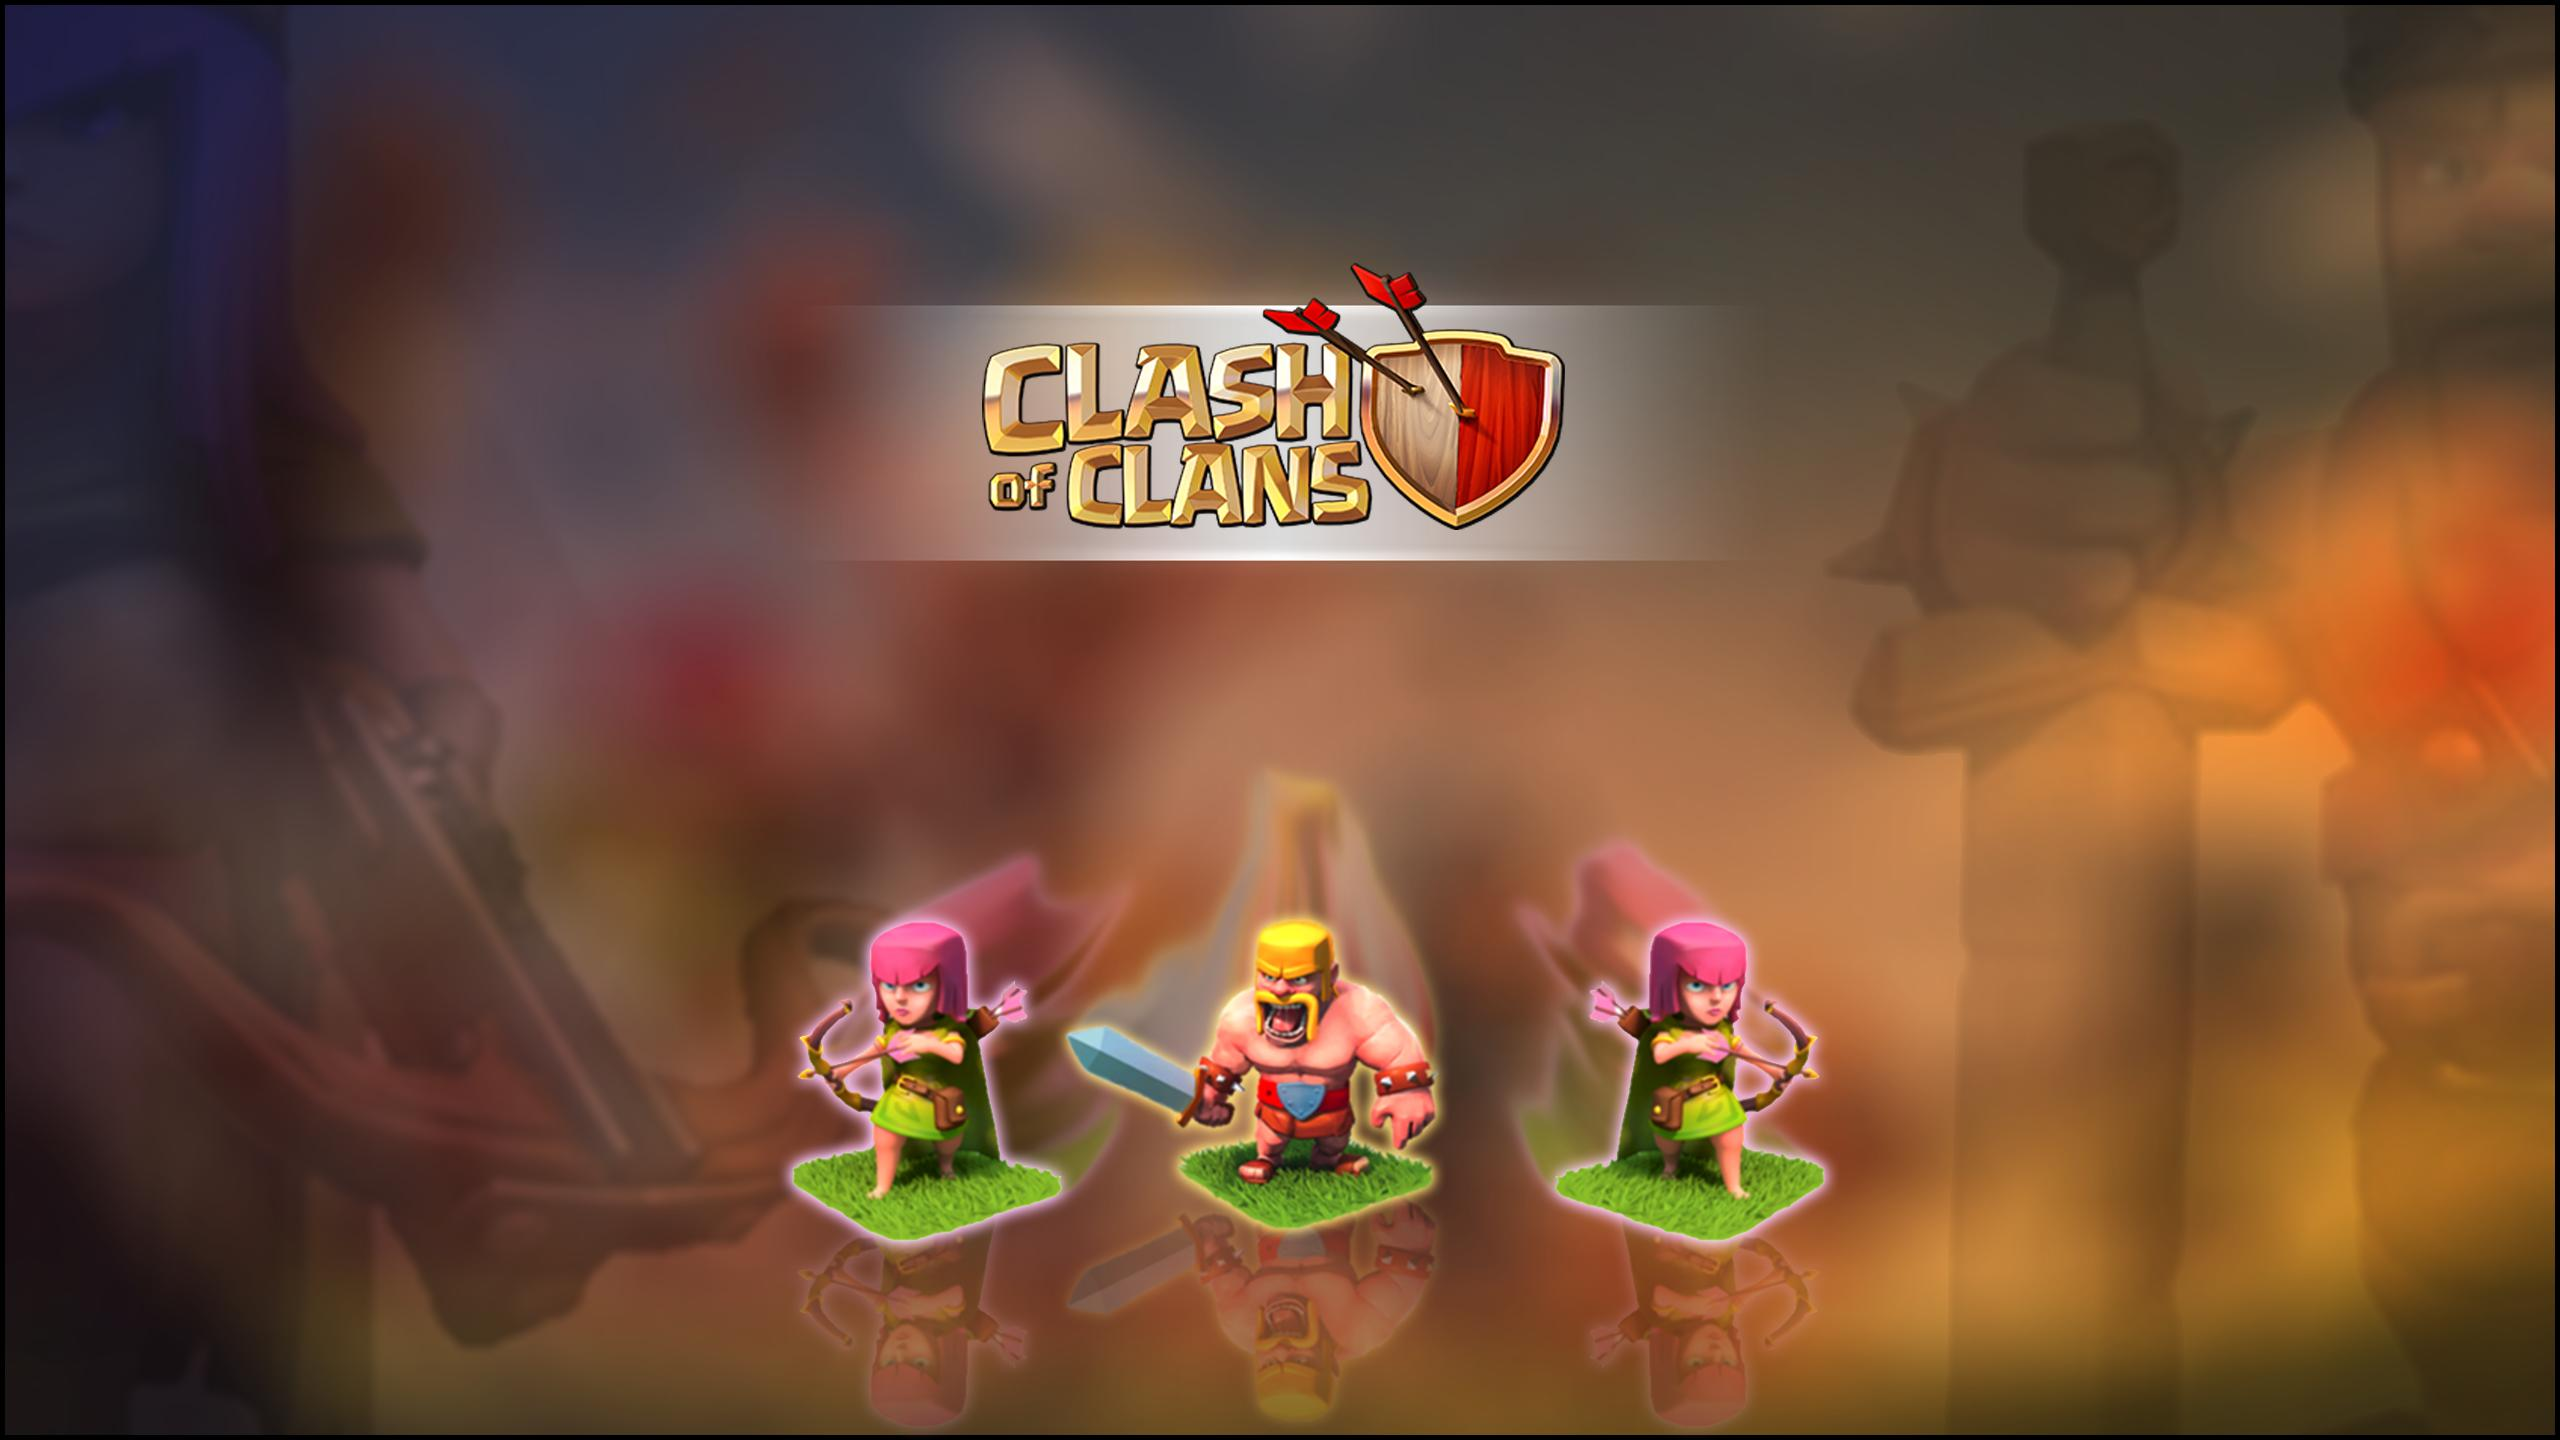 Clash Of Clans Hd Wallpaper Background Image 2560x1440 Id